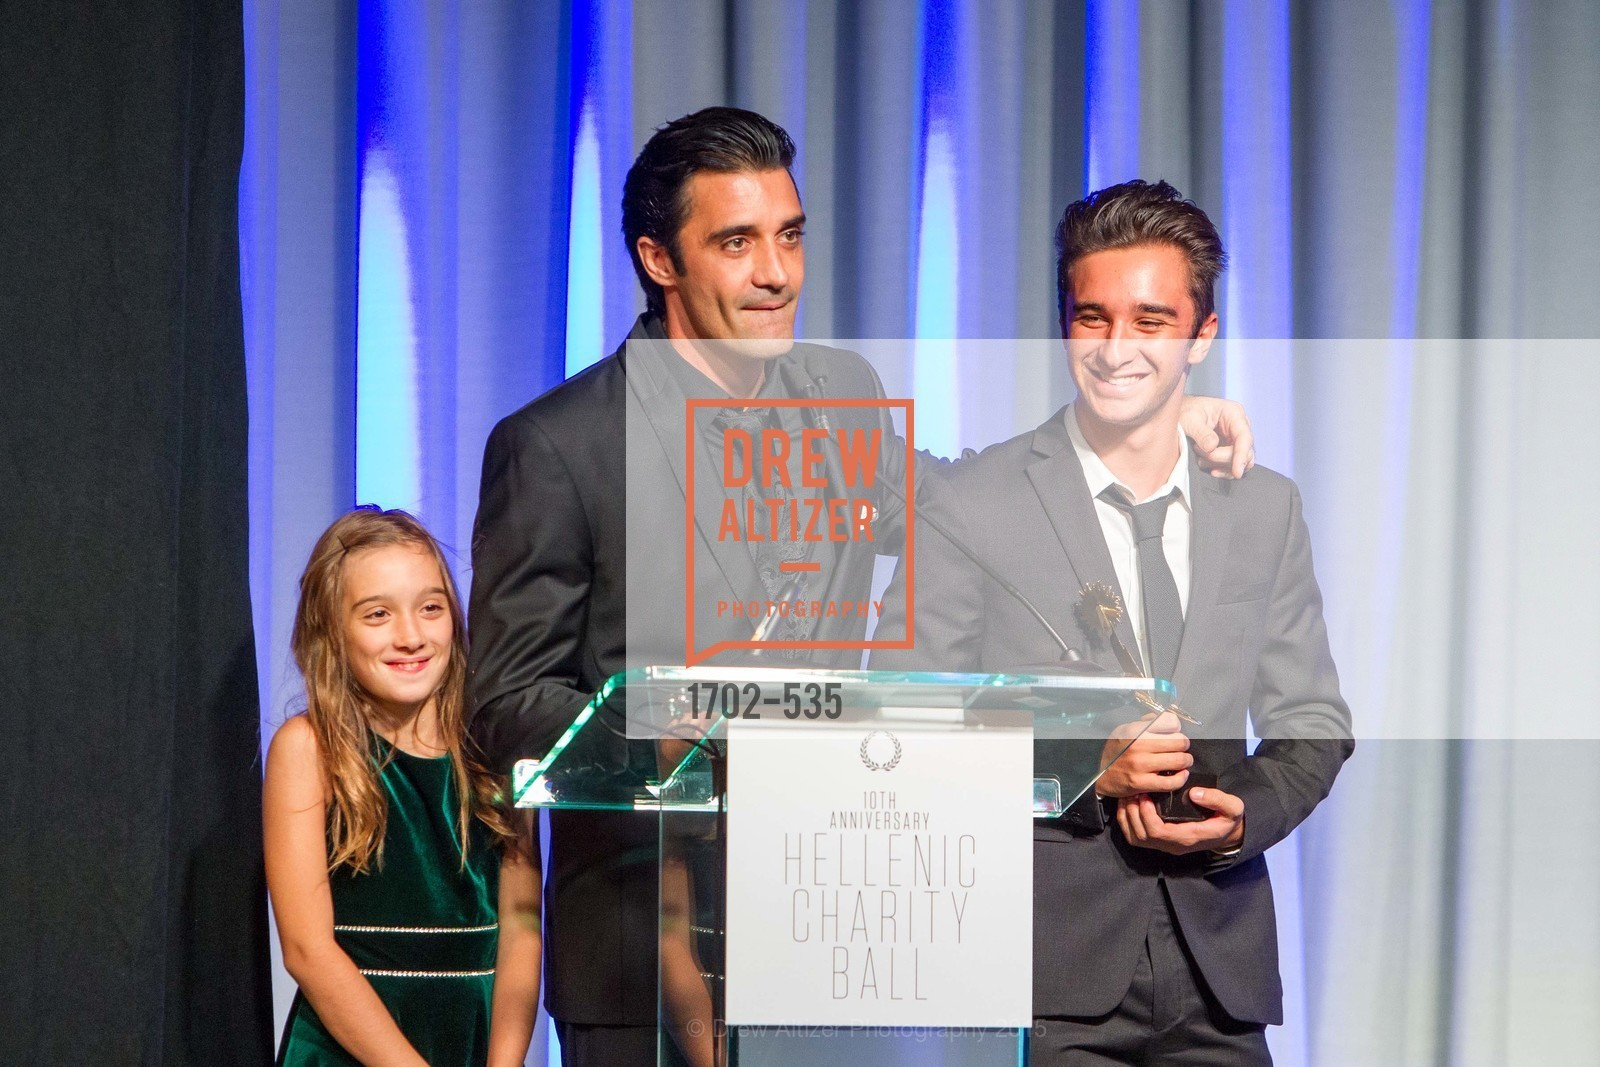 Juliana Marini, Gilles Marini, George Marini, Hellenic Charity Ball, Westin St. Francis. 335 Powell Street, November 14th, 2015,Drew Altizer, Drew Altizer Photography, full-service event agency, private events, San Francisco photographer, photographer California